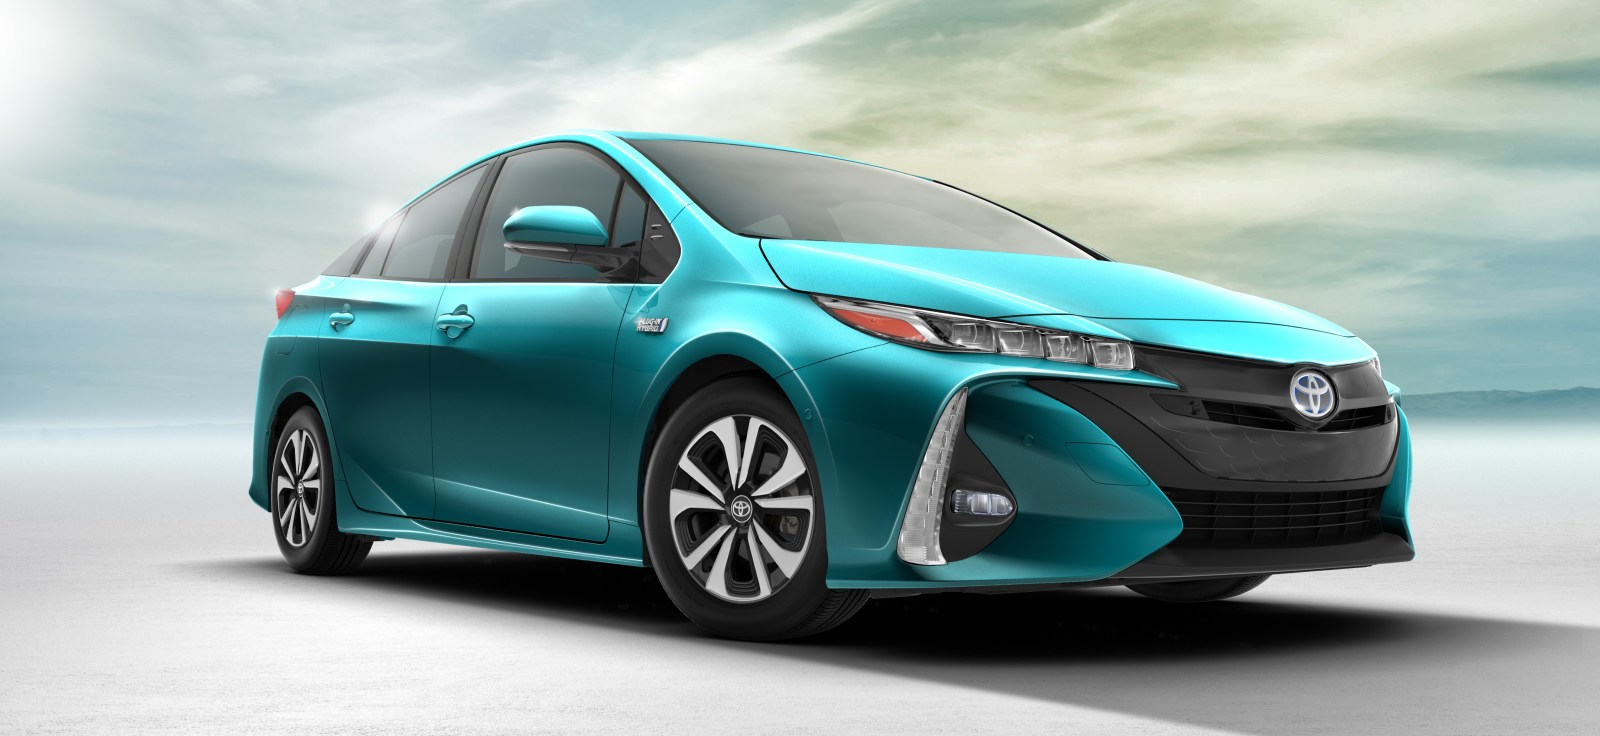 Toyota Prius Prime plug-in hybrid to have a $27,100 price tag and mighty 124 MPGe